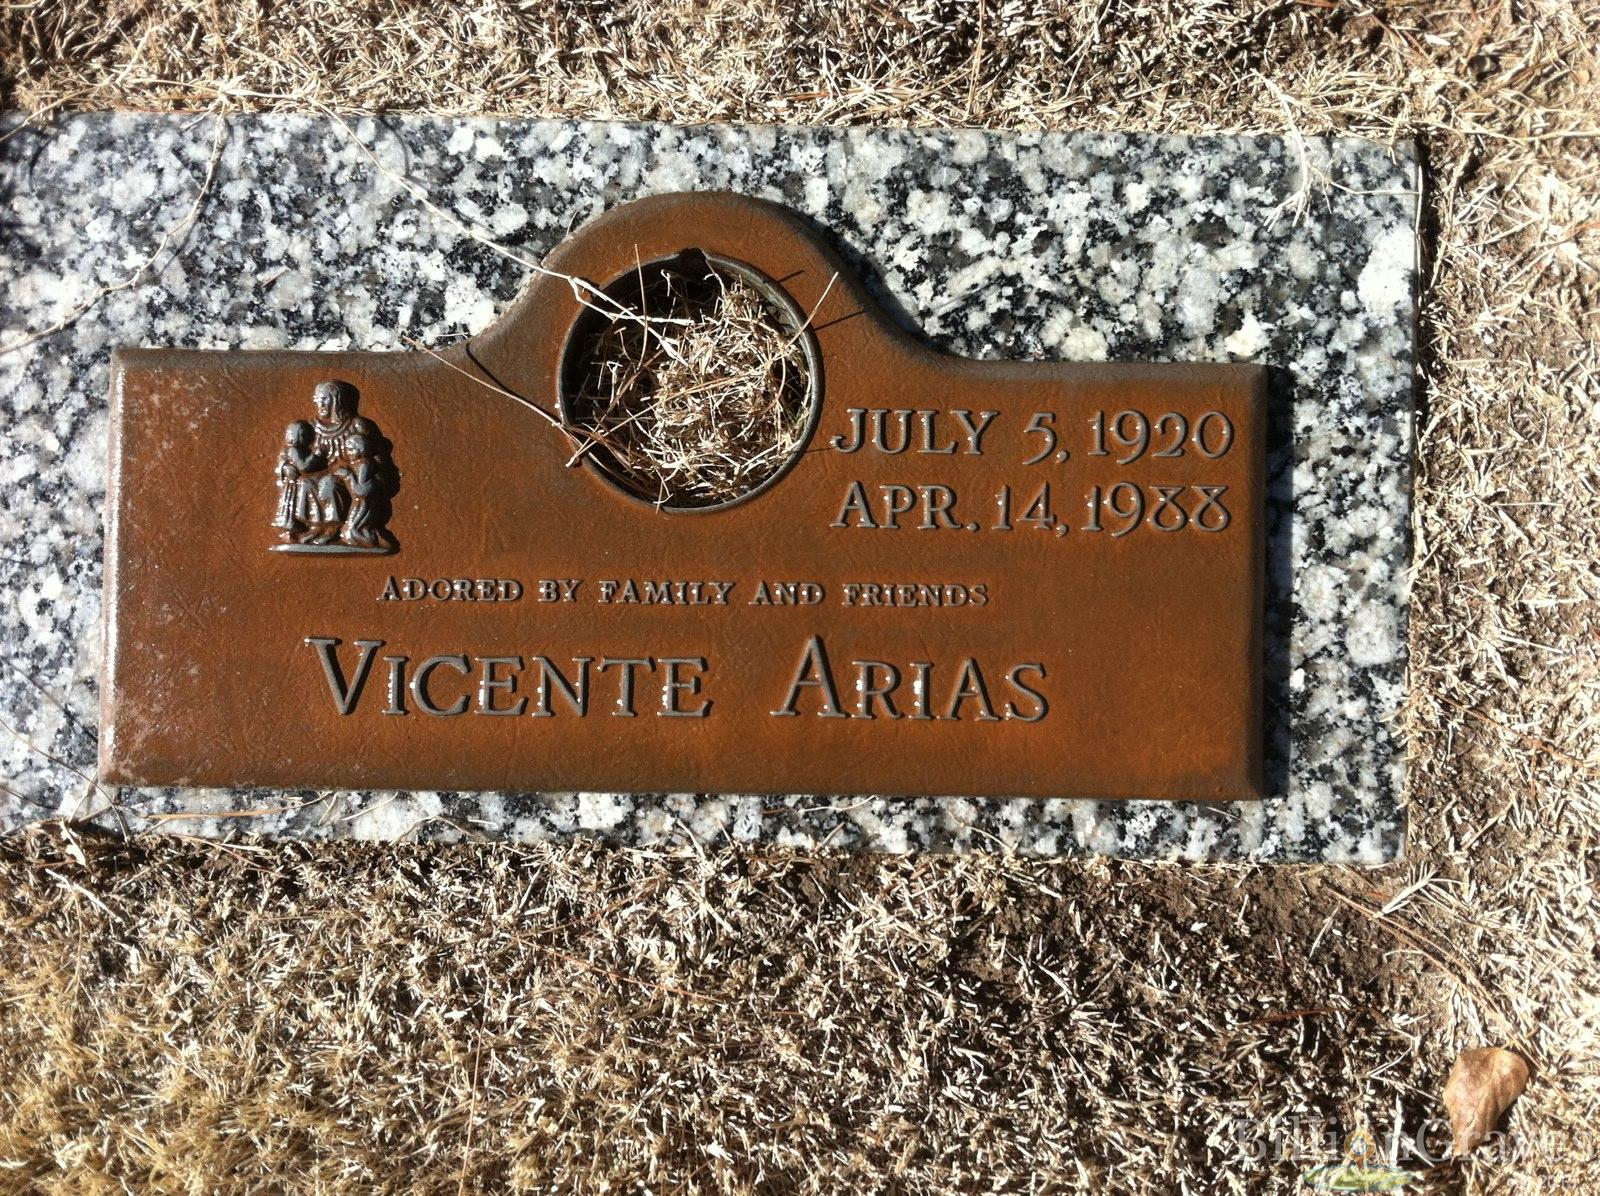 Vicente Arias (1920-1988) Grave Site Cemetery: Memory Gardens of the ...